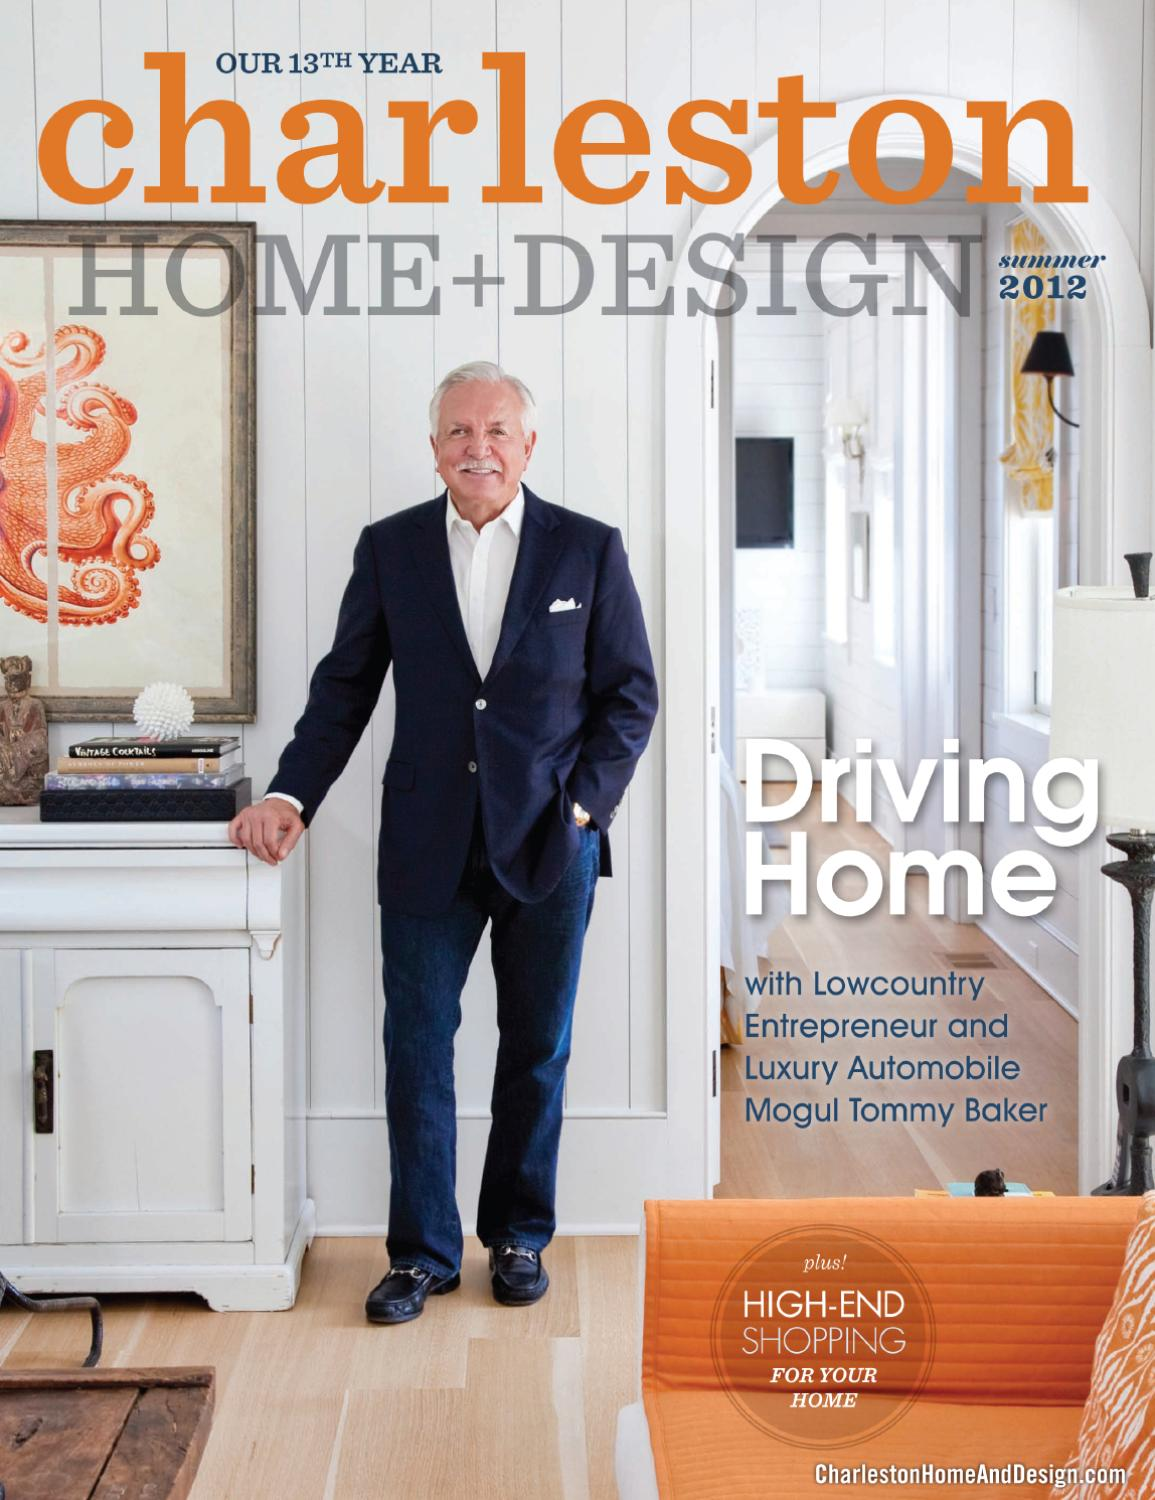 Home Design Magazine home decor sph magazines Charleston Home Design Magazine Summer 2012